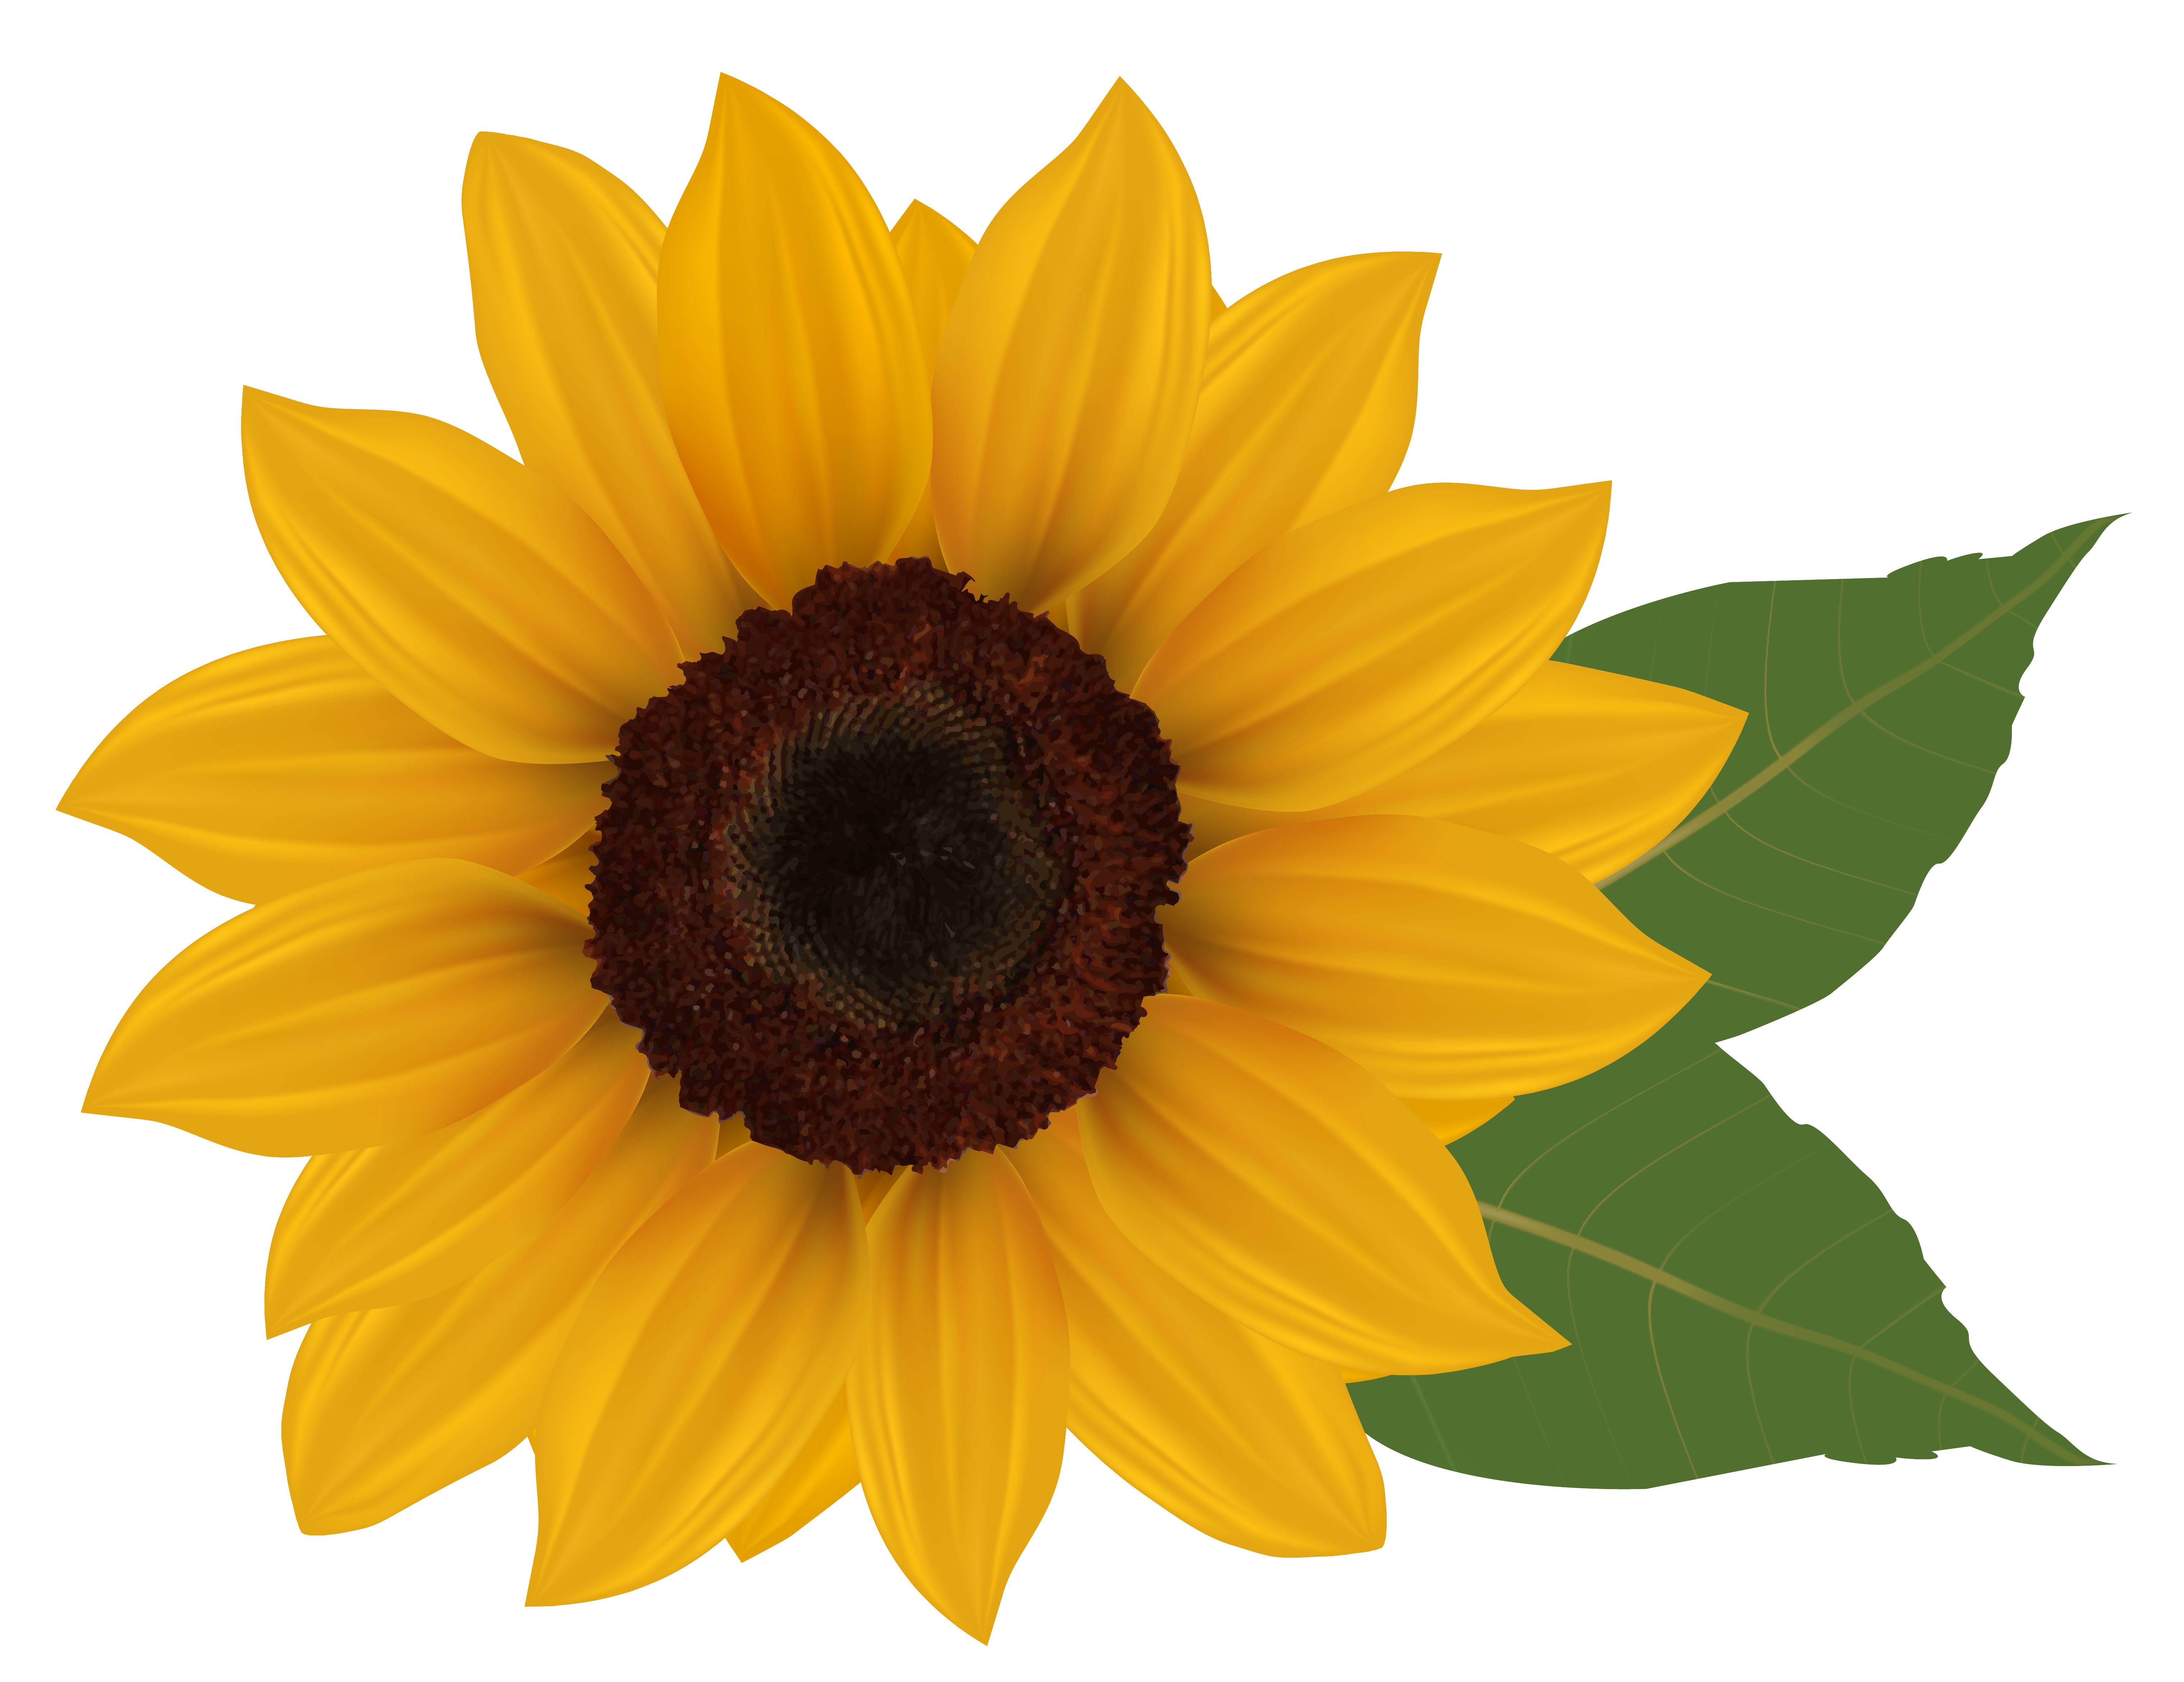 Free clipart images sunflowers vector free library Sunflower clip art free clipart images 2 clipartbold - ClipartBarn vector free library